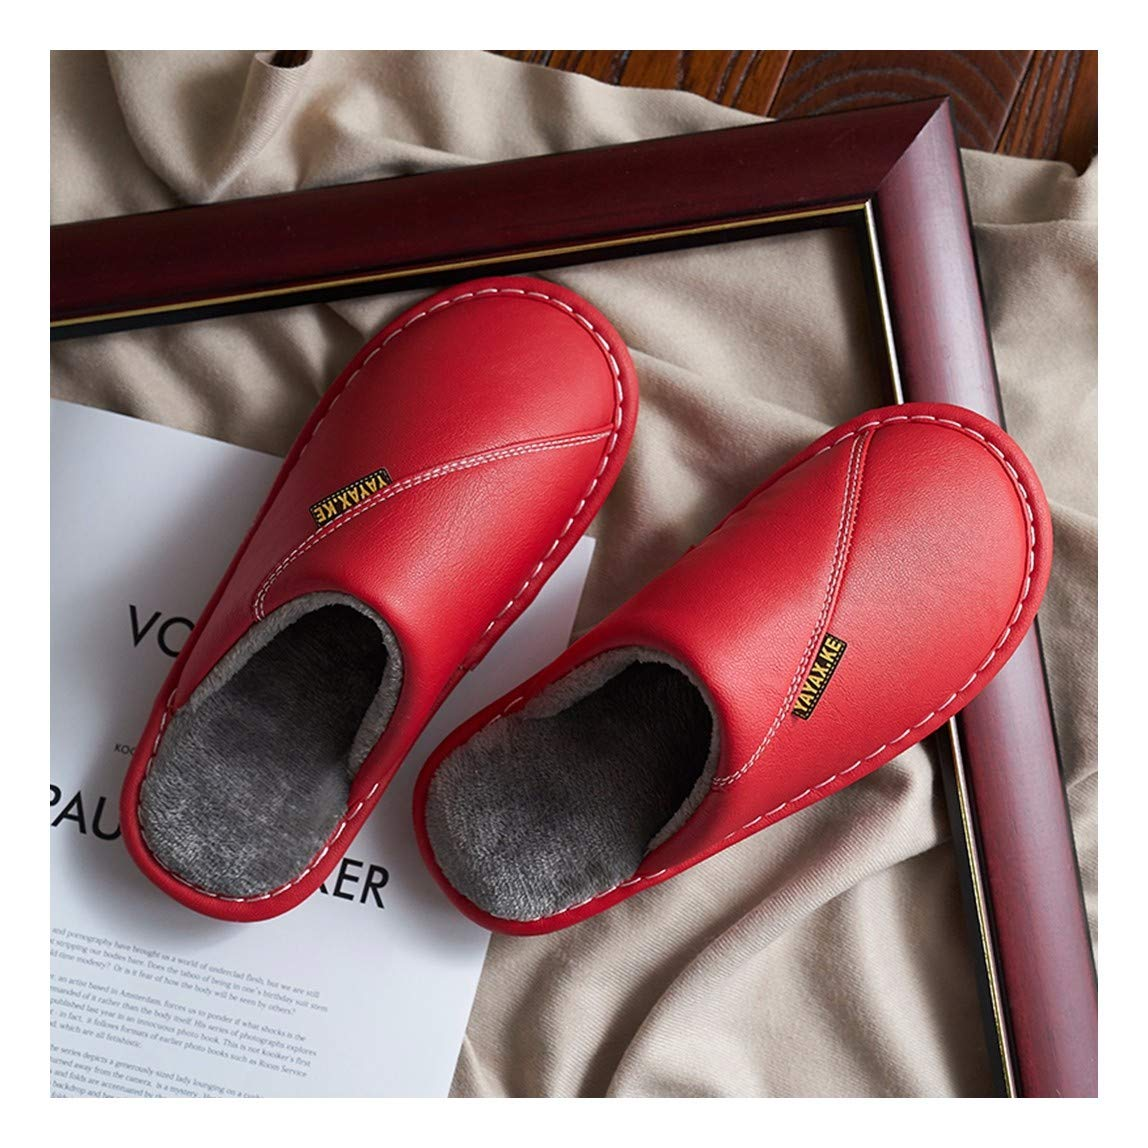 OMFGOD Slippers Femmes Hommes PU Chaussons Hiver Home Piscine Chaud Non-Slip Imperméables Étage Chaussures Amoureux Silencieux 38-39 Rouge Rouge